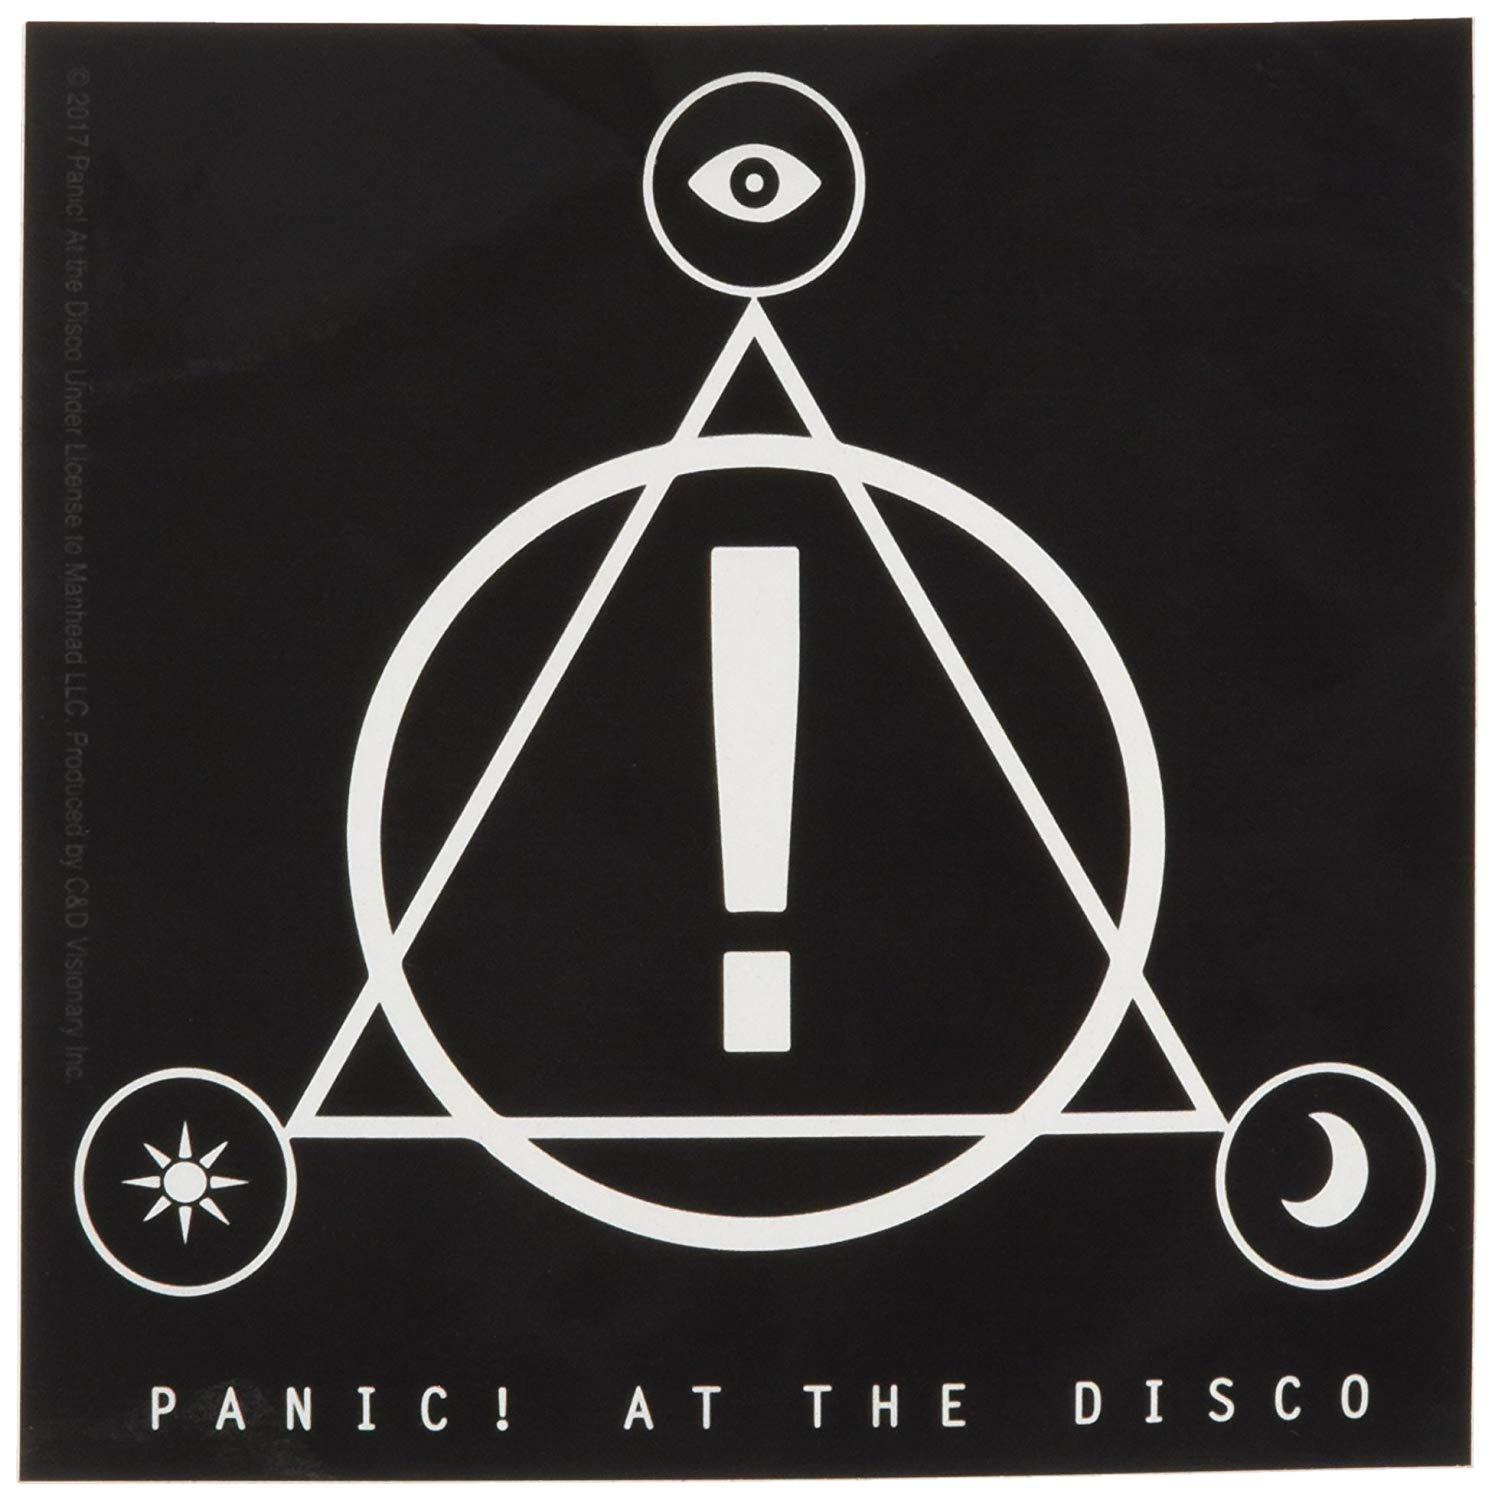 Panic! At The Disco Logo Wallpapers